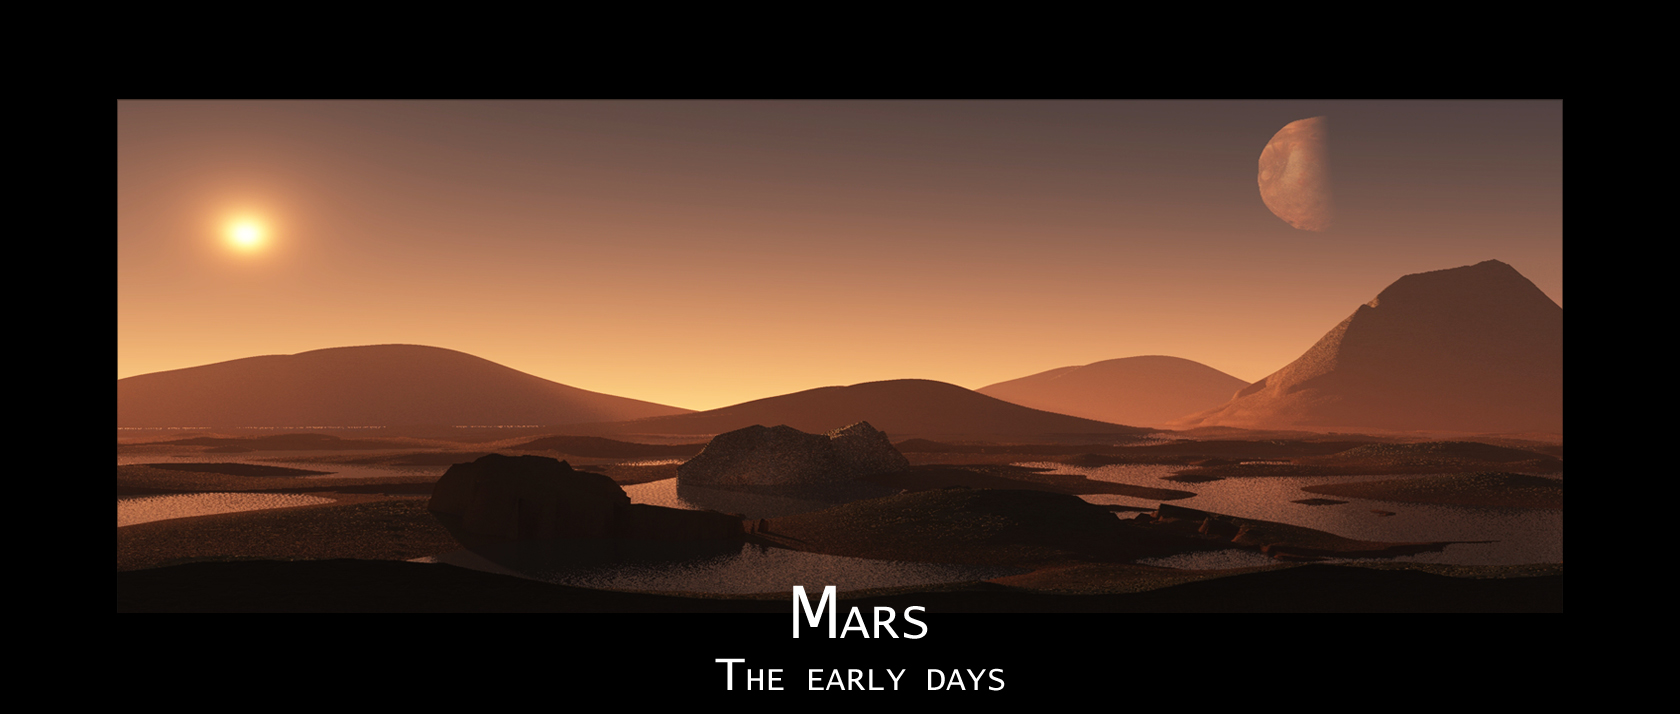 Mars - The earky days